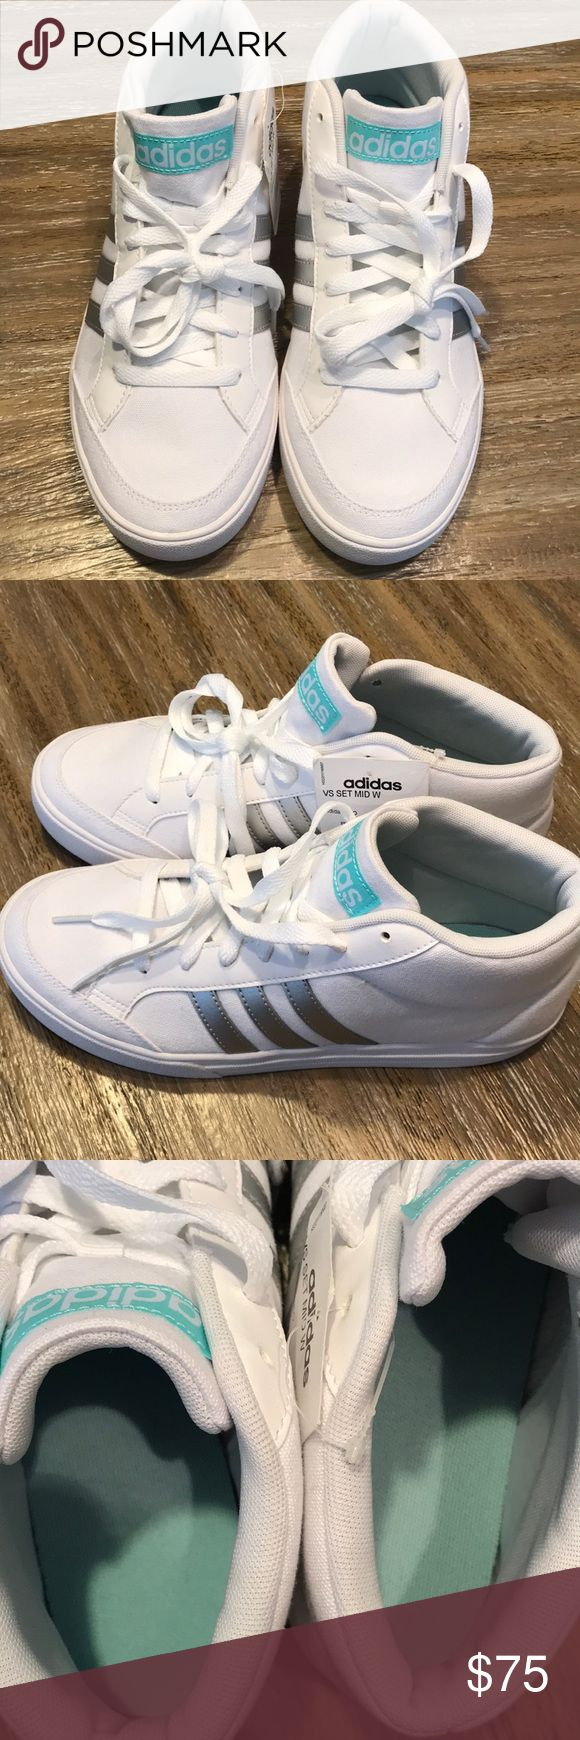 🤩New!!! Adidas shoes!! Brand new without box!! White mid top tennis shoe with silver metallic adidas stripes and tiffany blue tongue! NWT!! adidas Shoes Sneakers